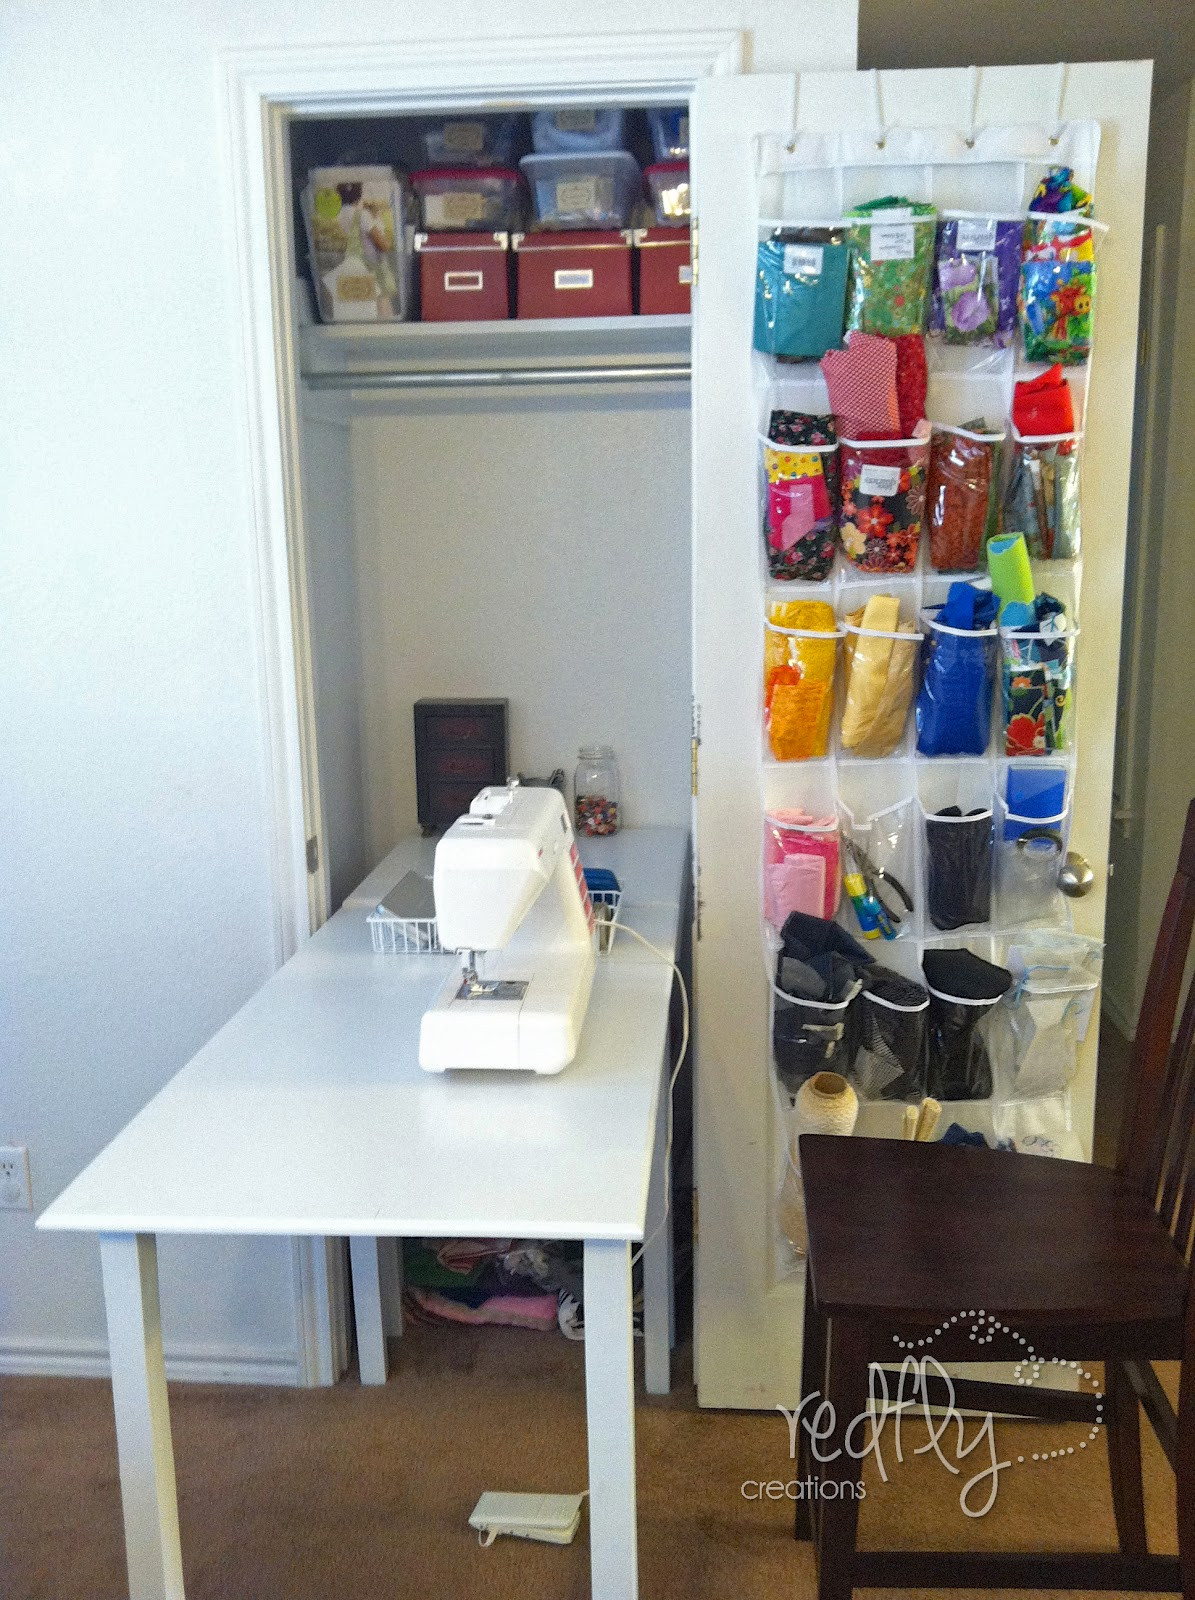 Redfly creations sewing table folds up into closet - Sewing table for small spaces design ...